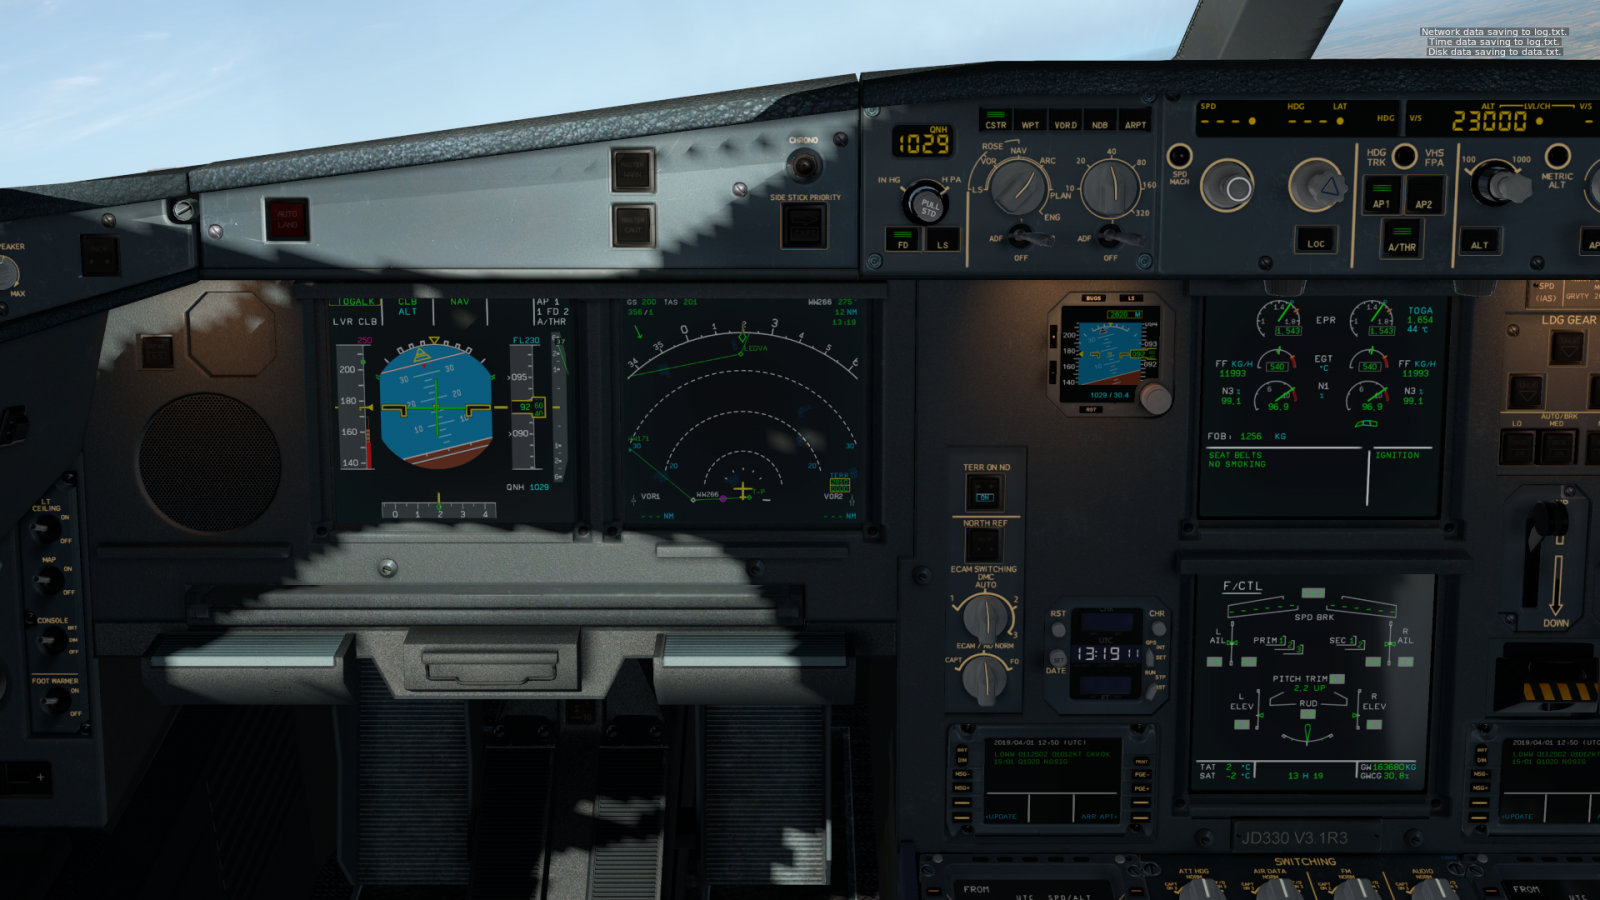 A330 problems whit autopilot and many things - A330 by